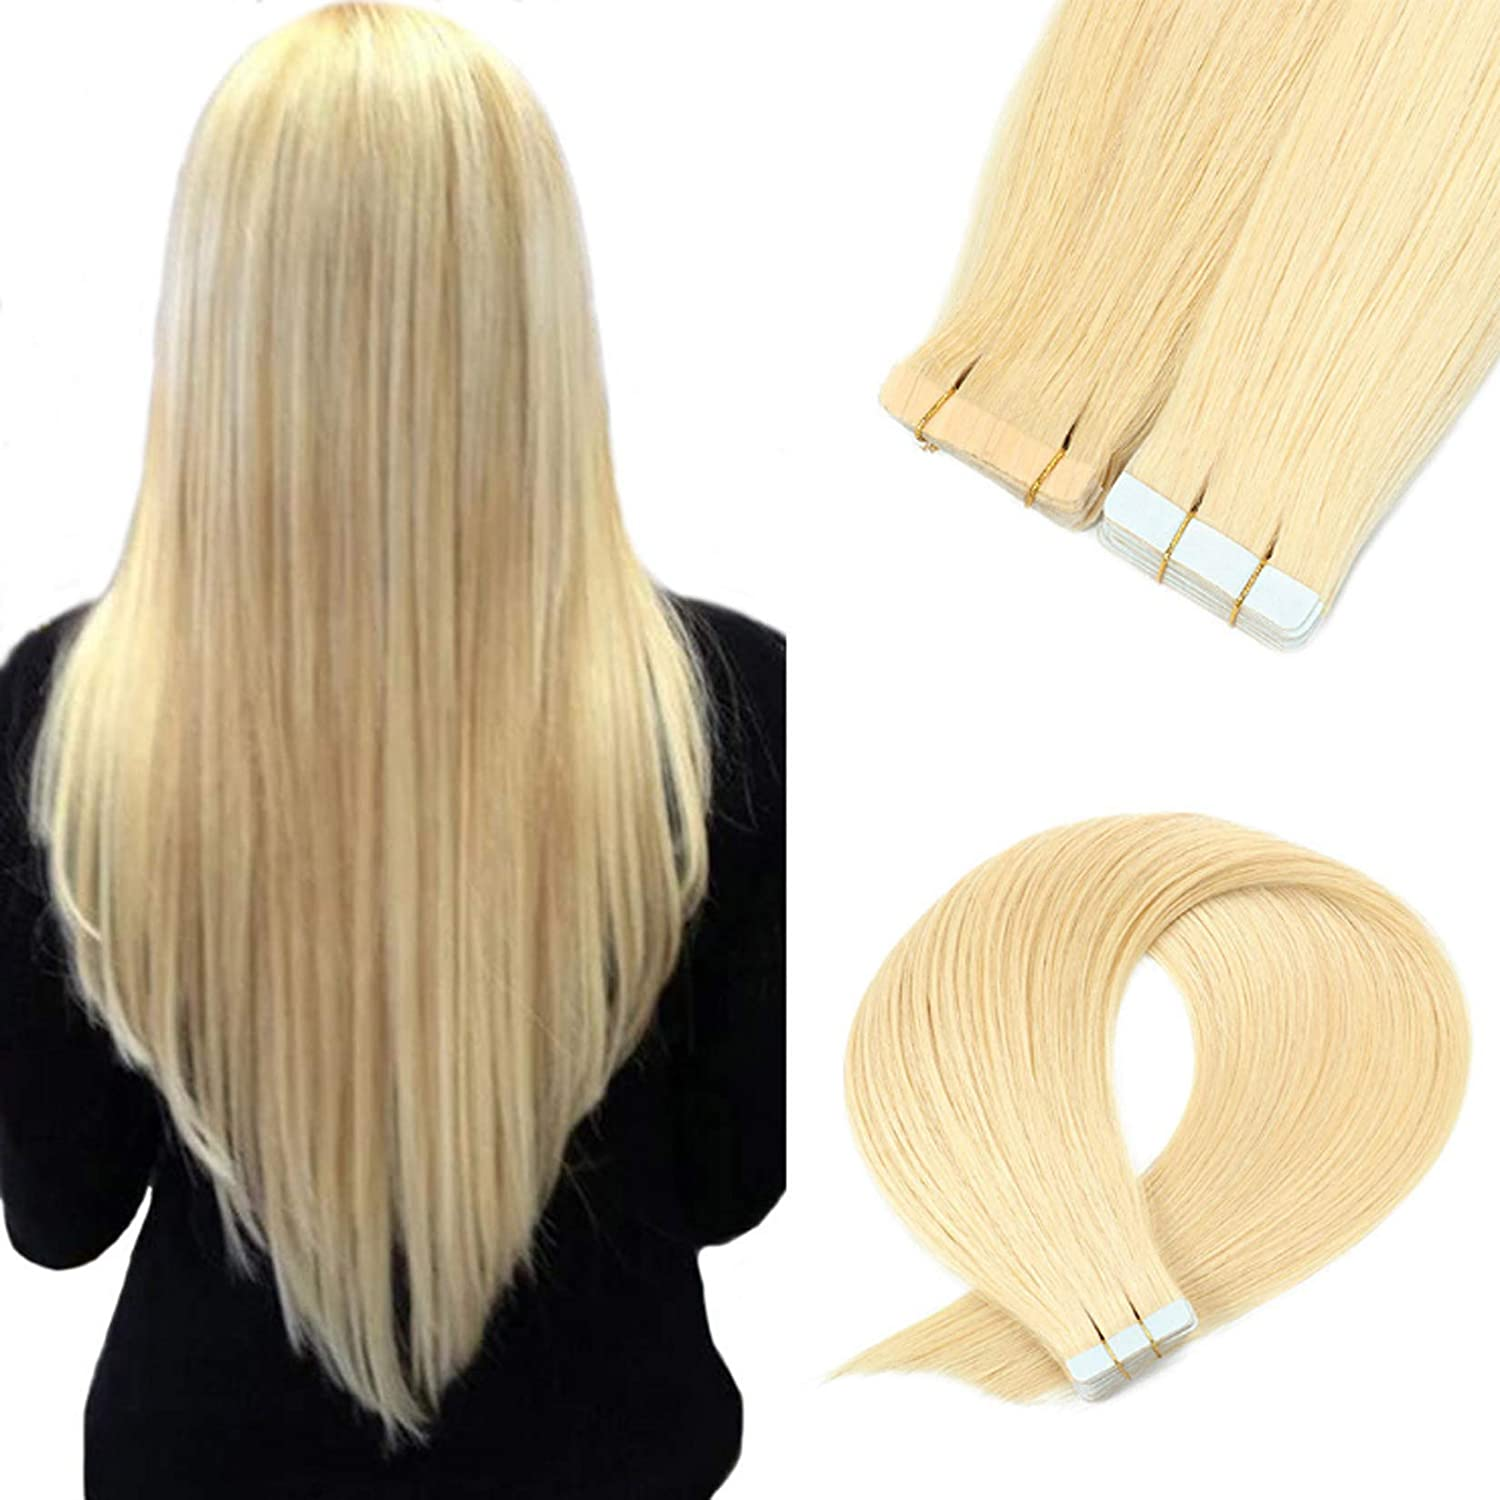 Tape in Hair Extensions Human 16-24 20Pcs Max 76% Soldering OFF Inch Pack Sea 50G